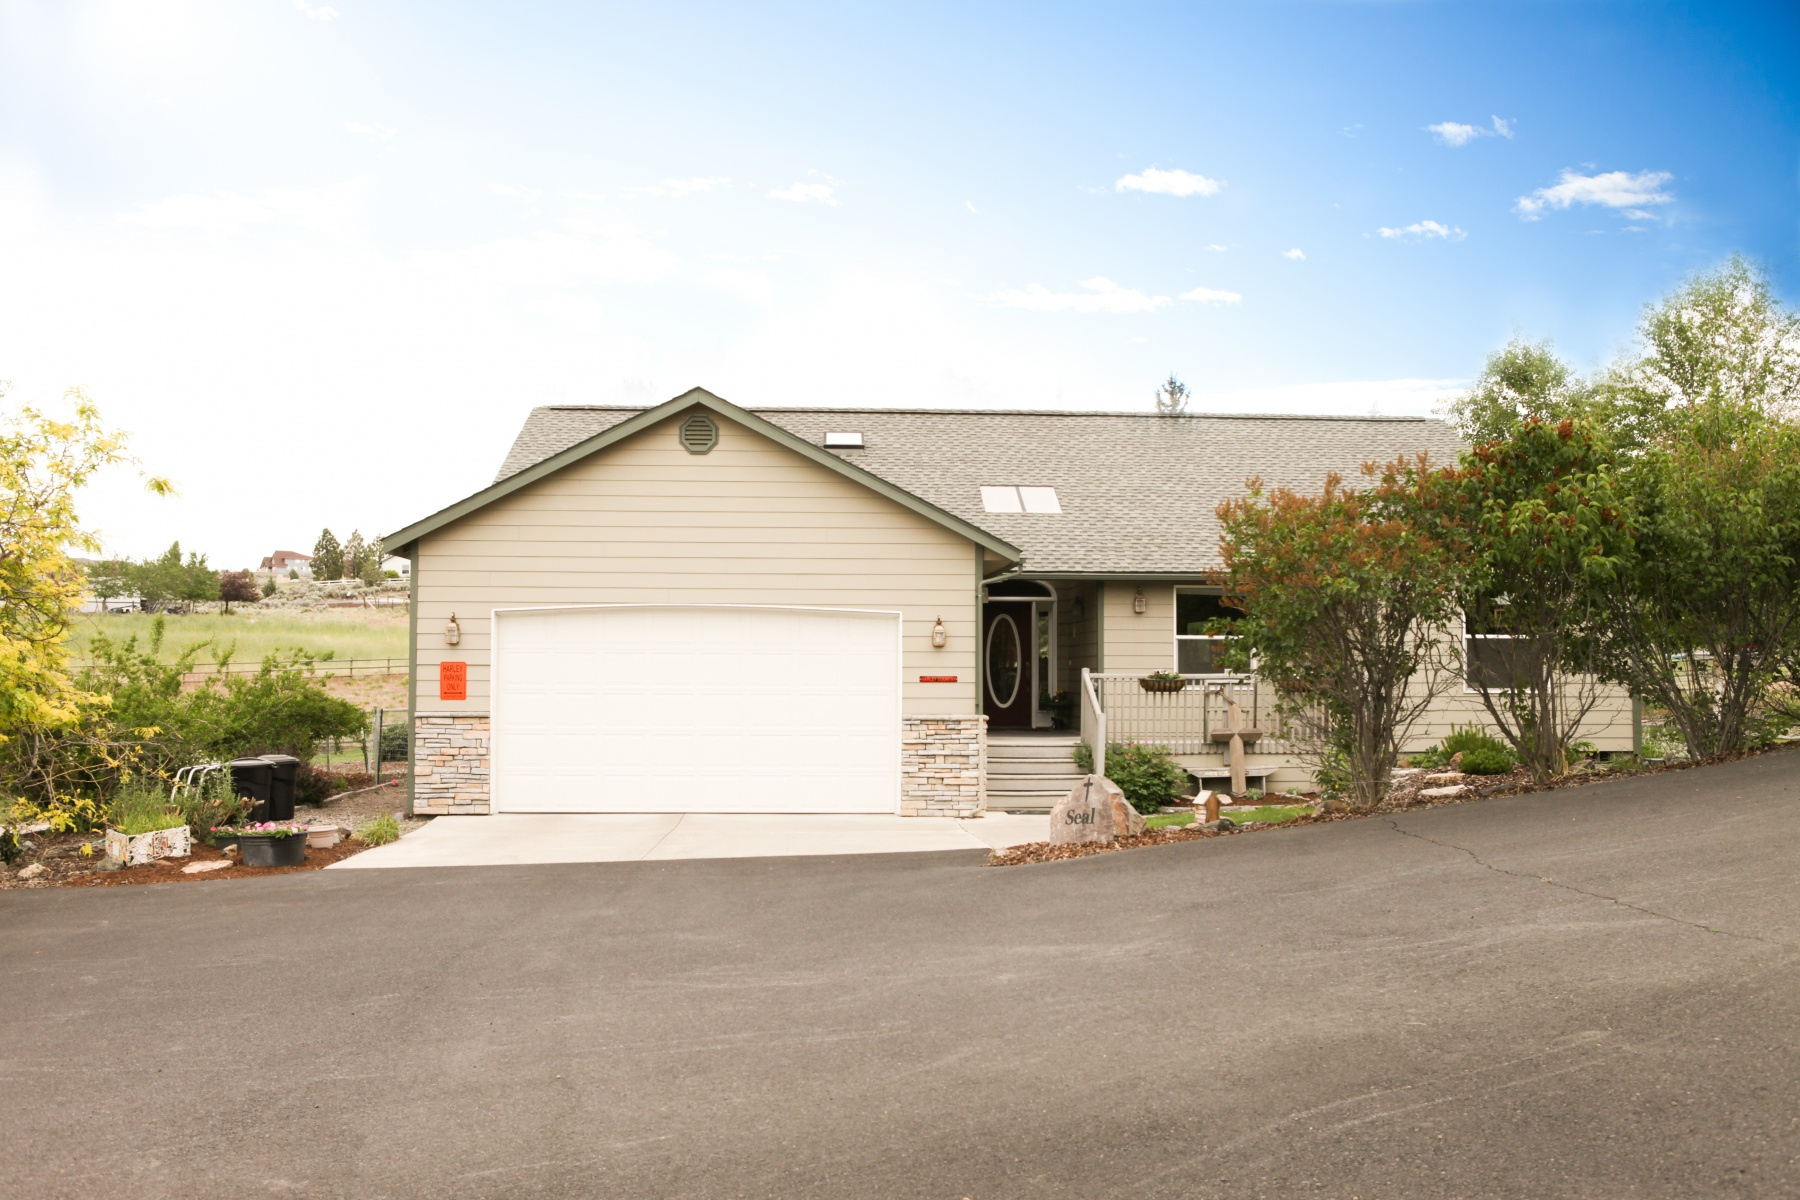 Single Family Home for Sale at 2 Acre Home Move-In Ready 2165 SE Sagebrush Dr Madras, Oregon, 97741 United States